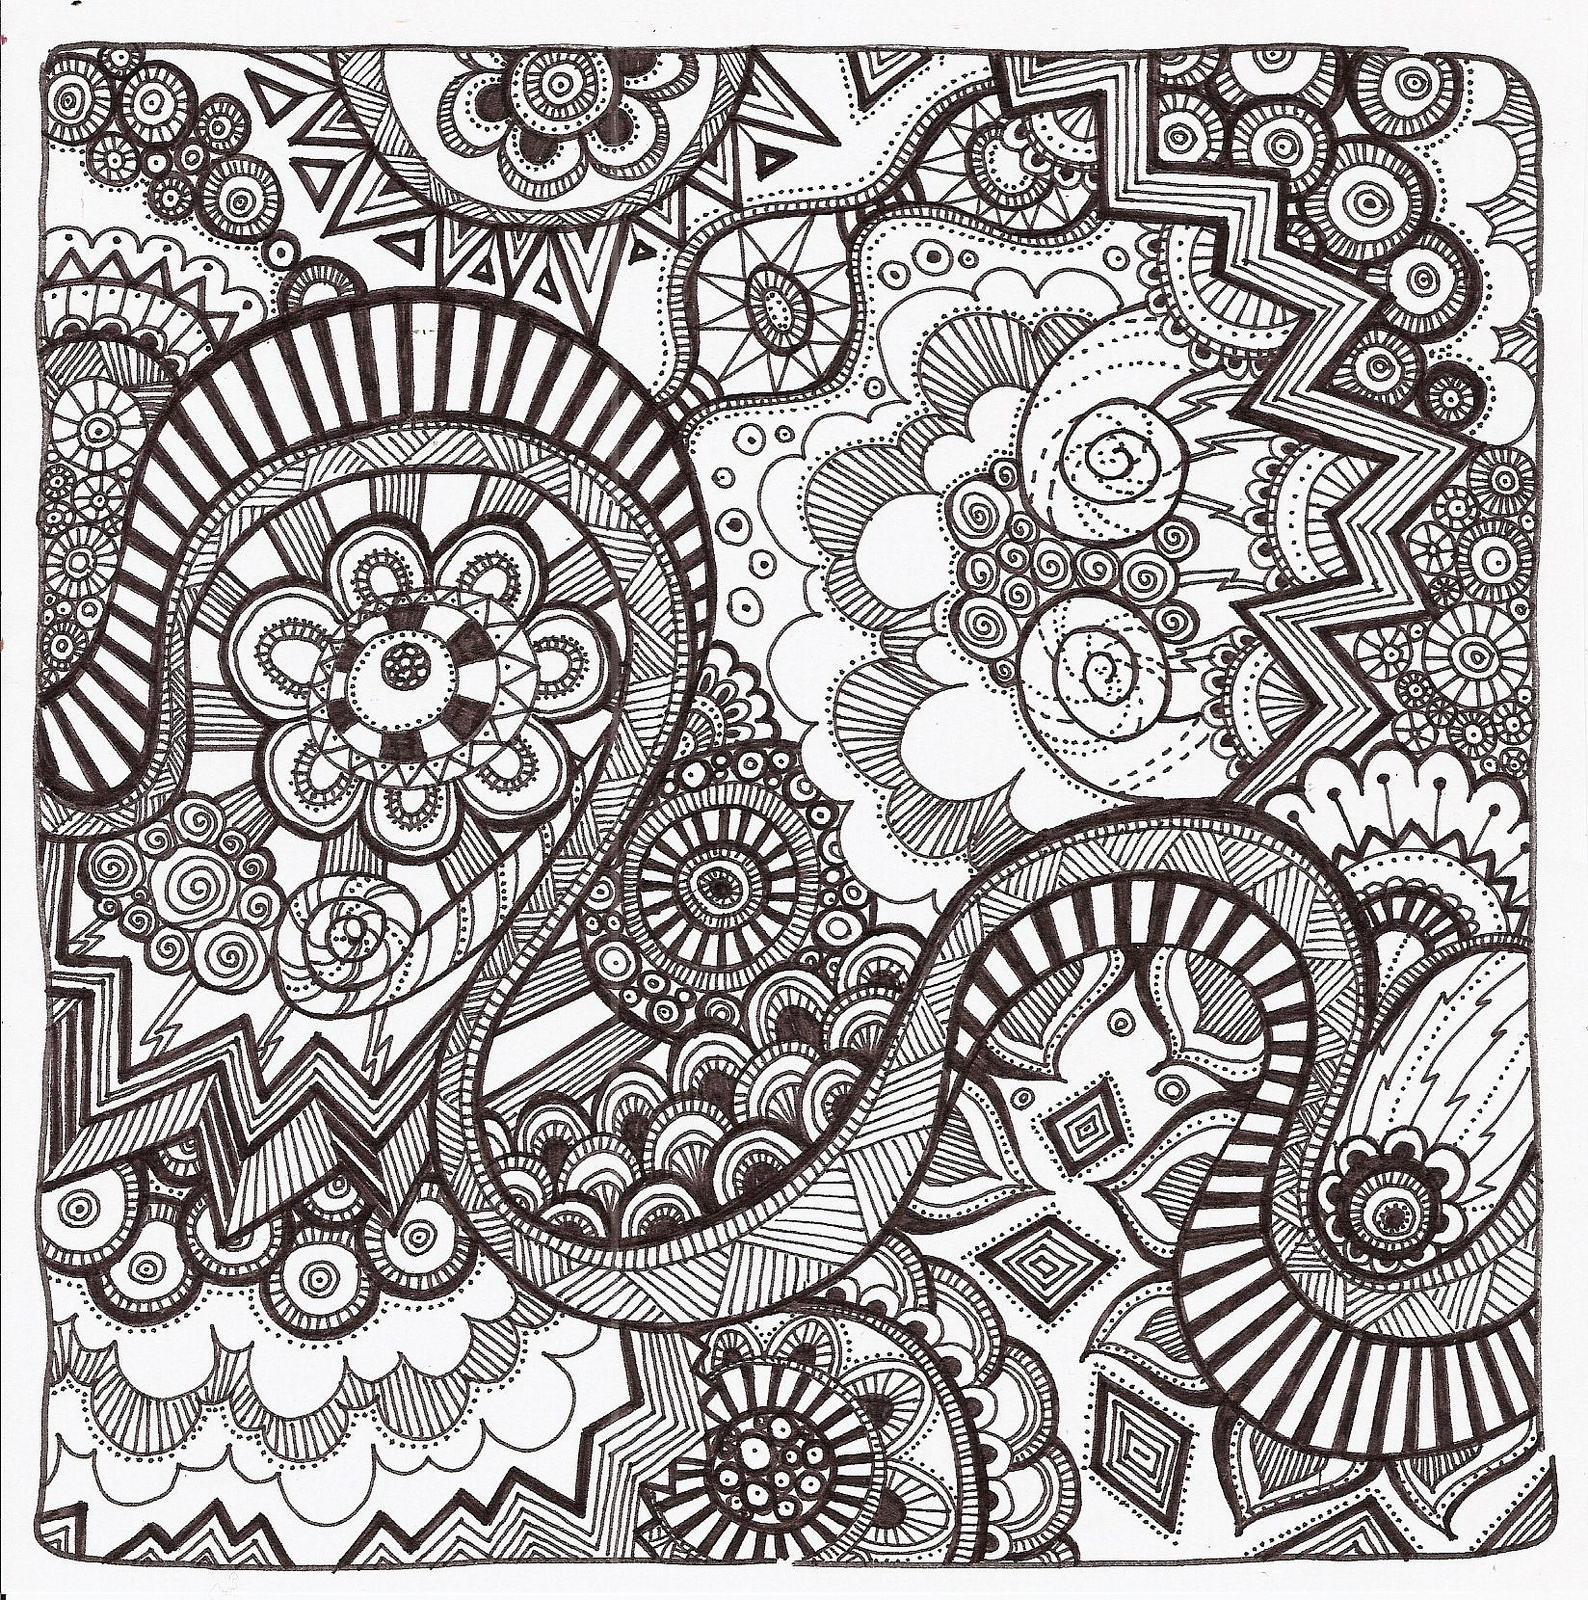 Free Printable Zentangle Coloring Pages For Adults - Free Printable Zentangle Templates